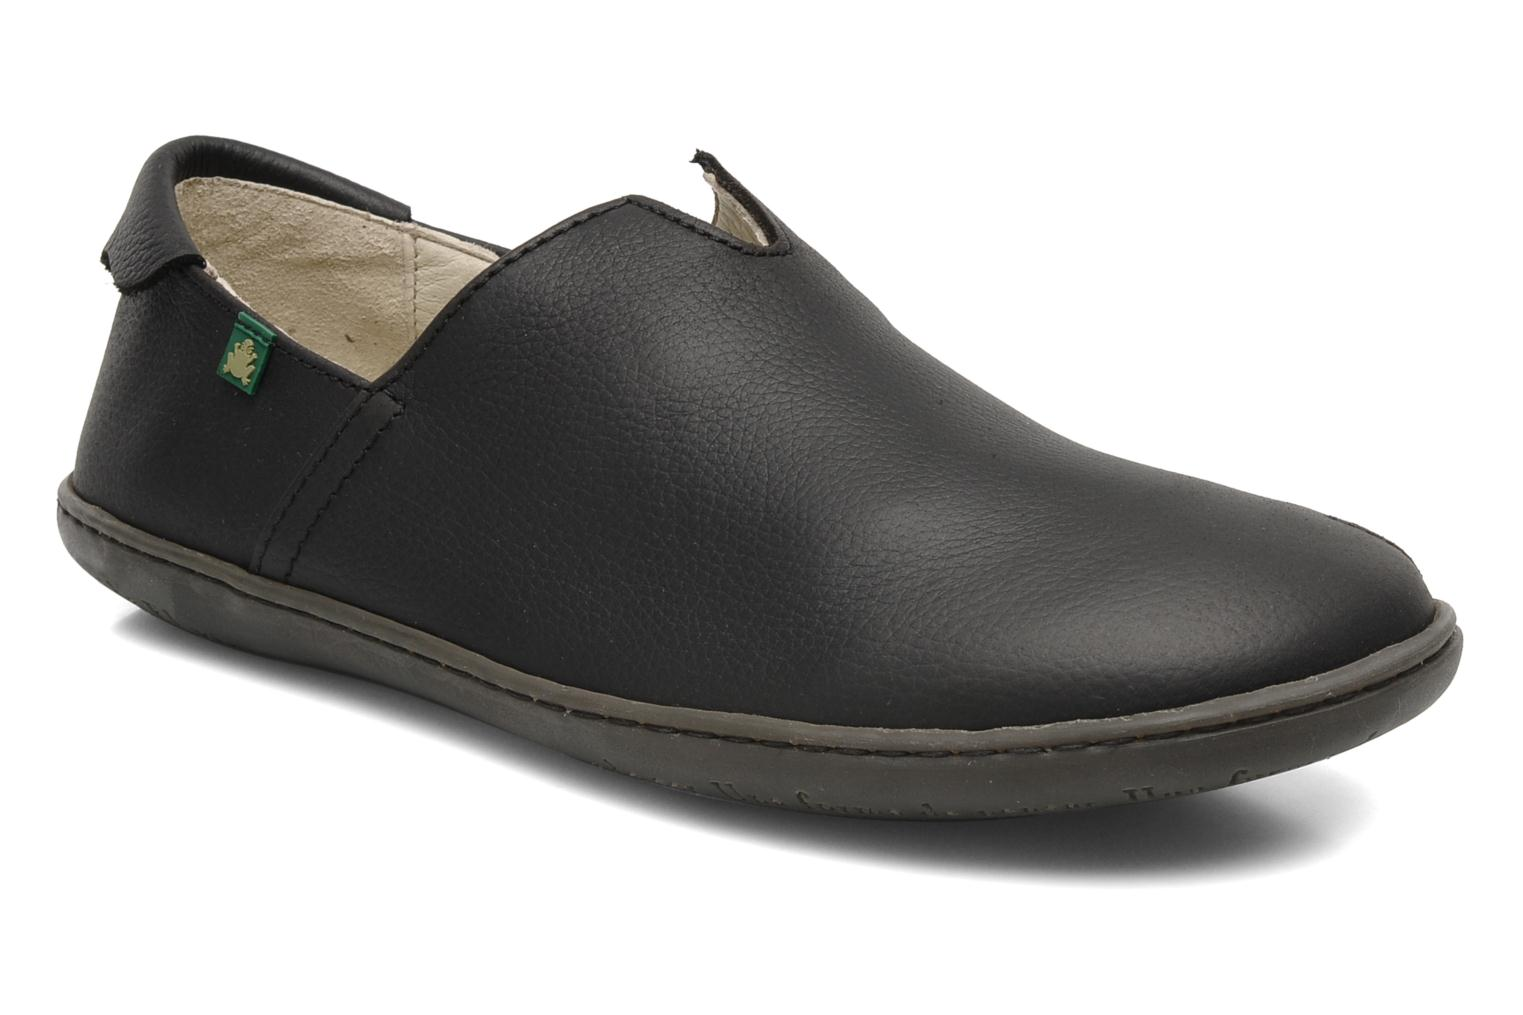 Viajero Moc N°275 SOFT GRAIN BLACK